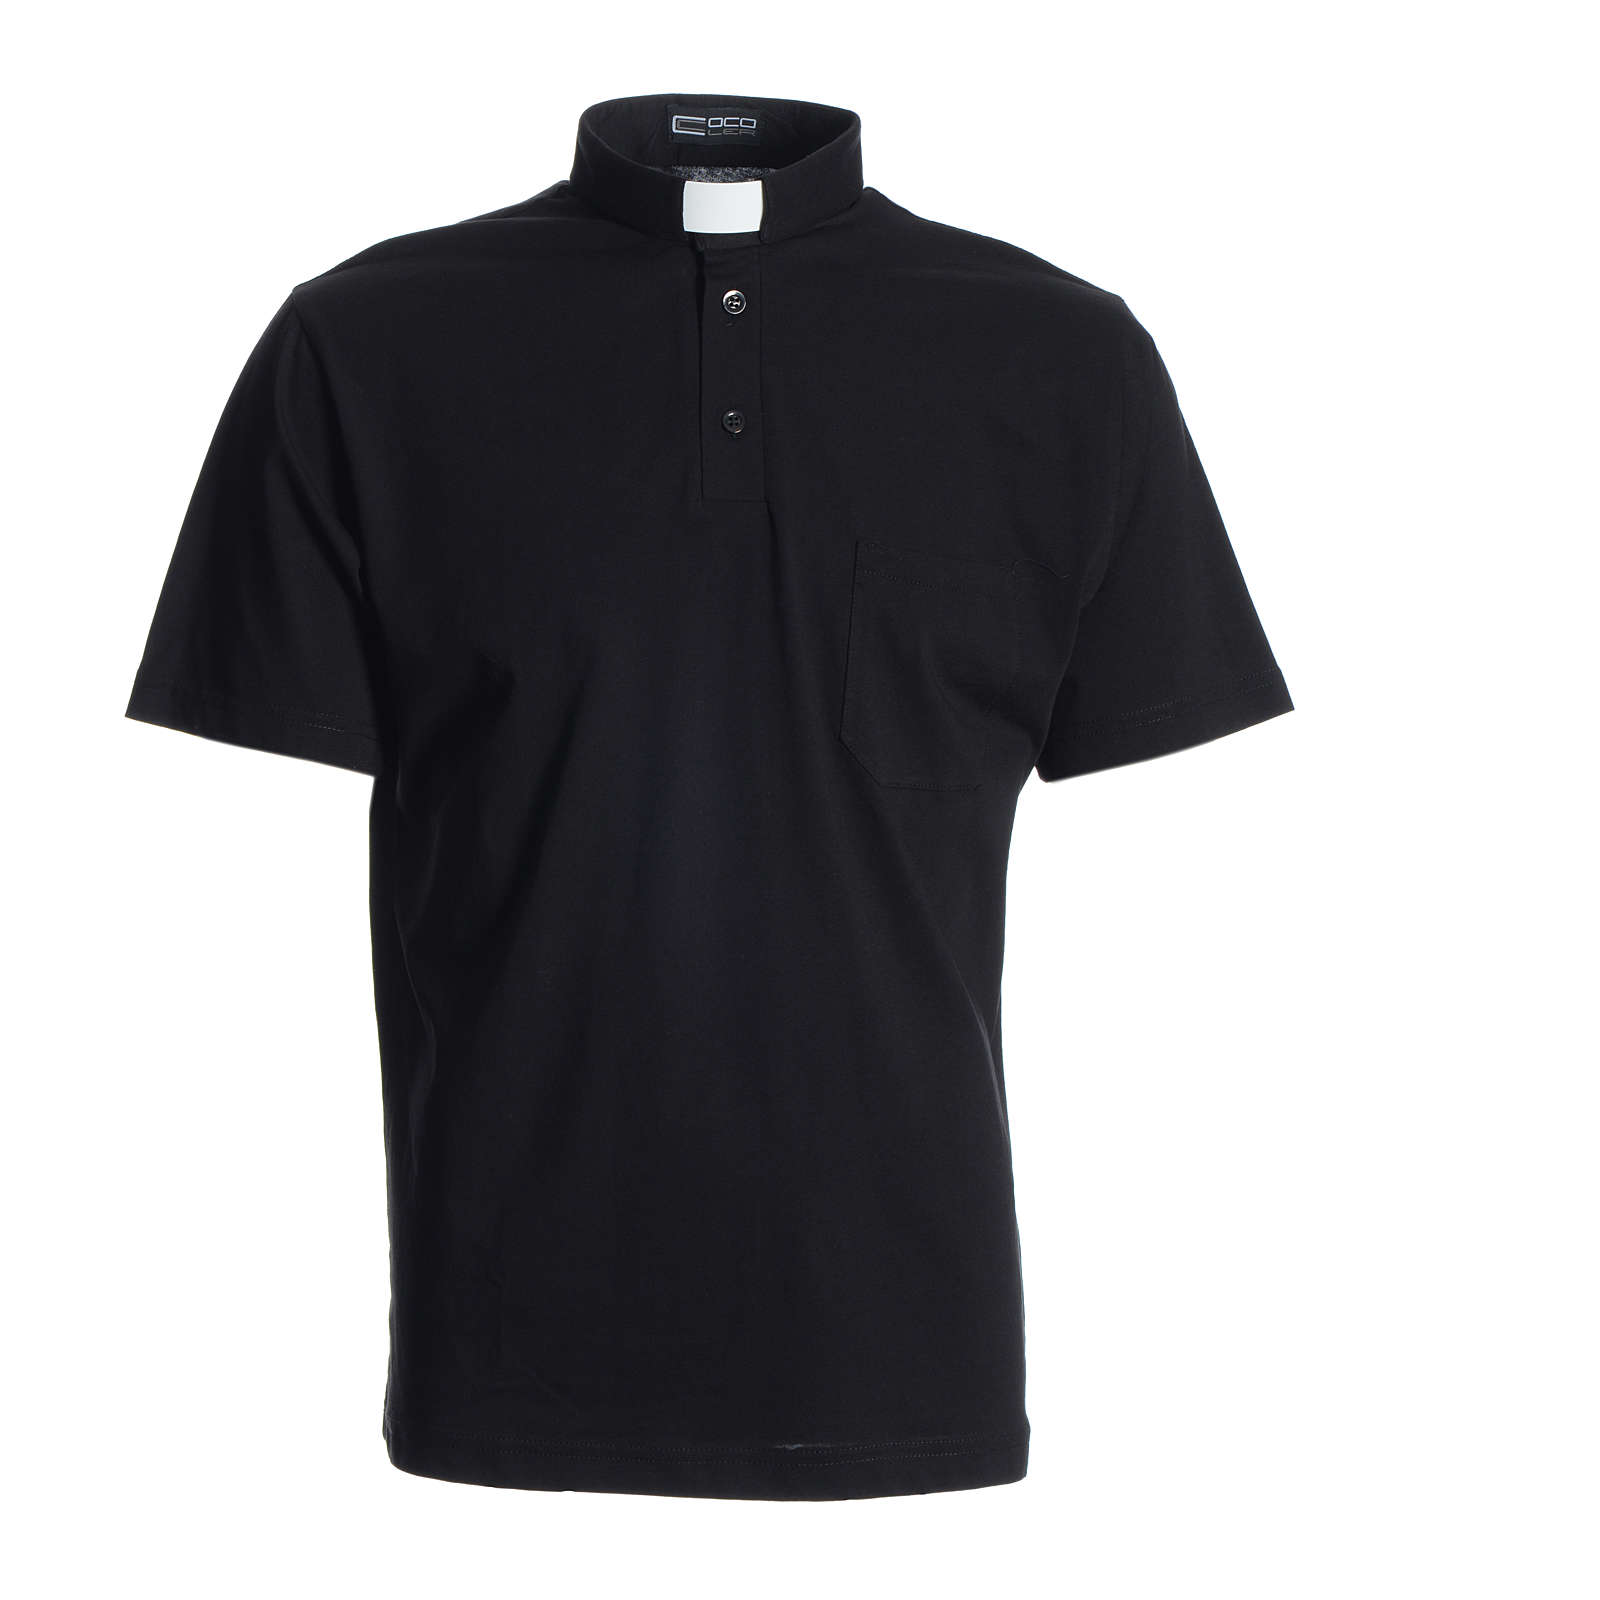 Clergyman polo shirt in black, 100% cotton 4